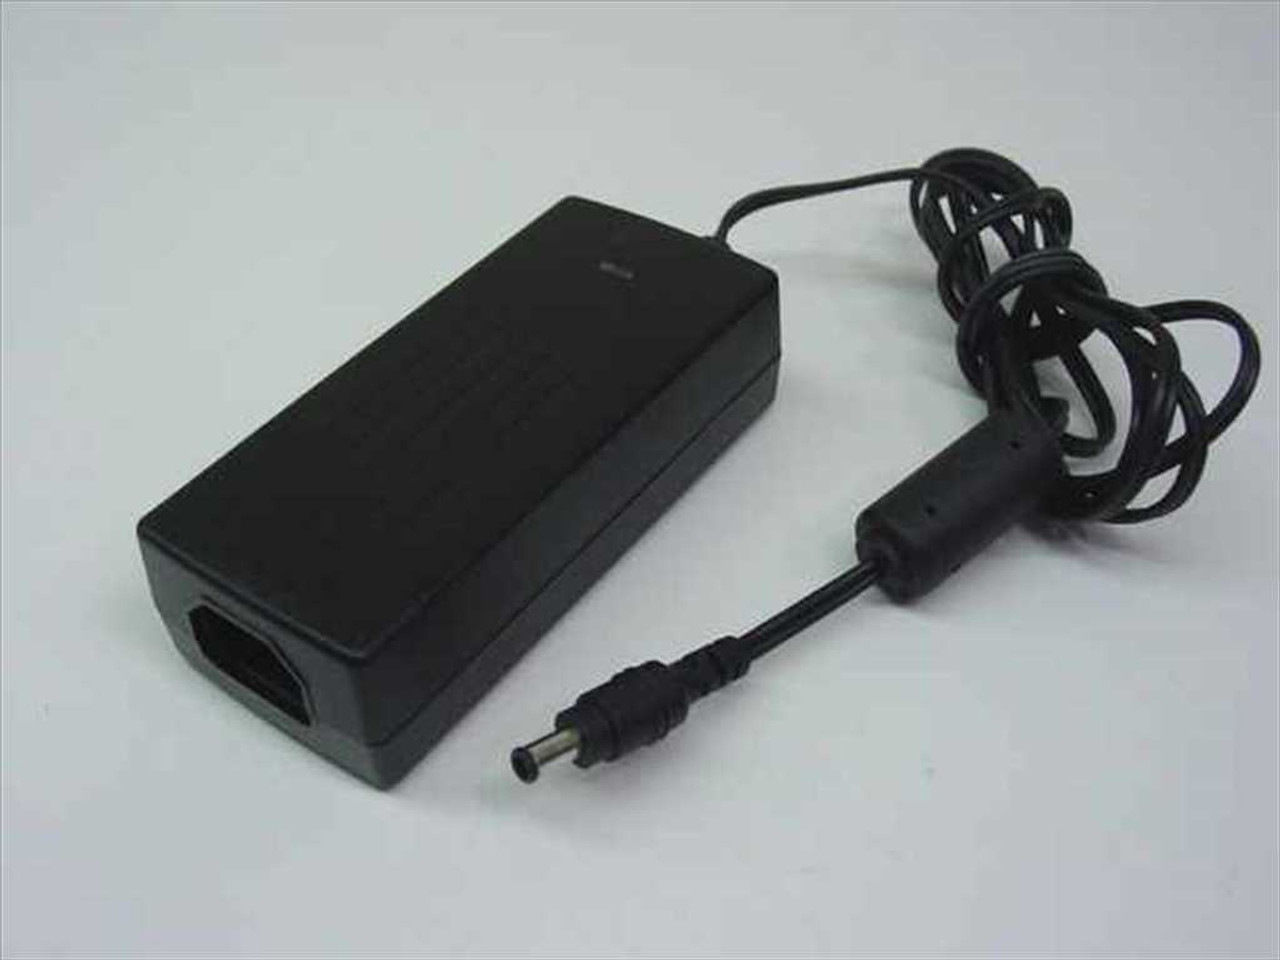 yamaha lse0107a1236 ac adapter for mag lcd 568. Black Bedroom Furniture Sets. Home Design Ideas